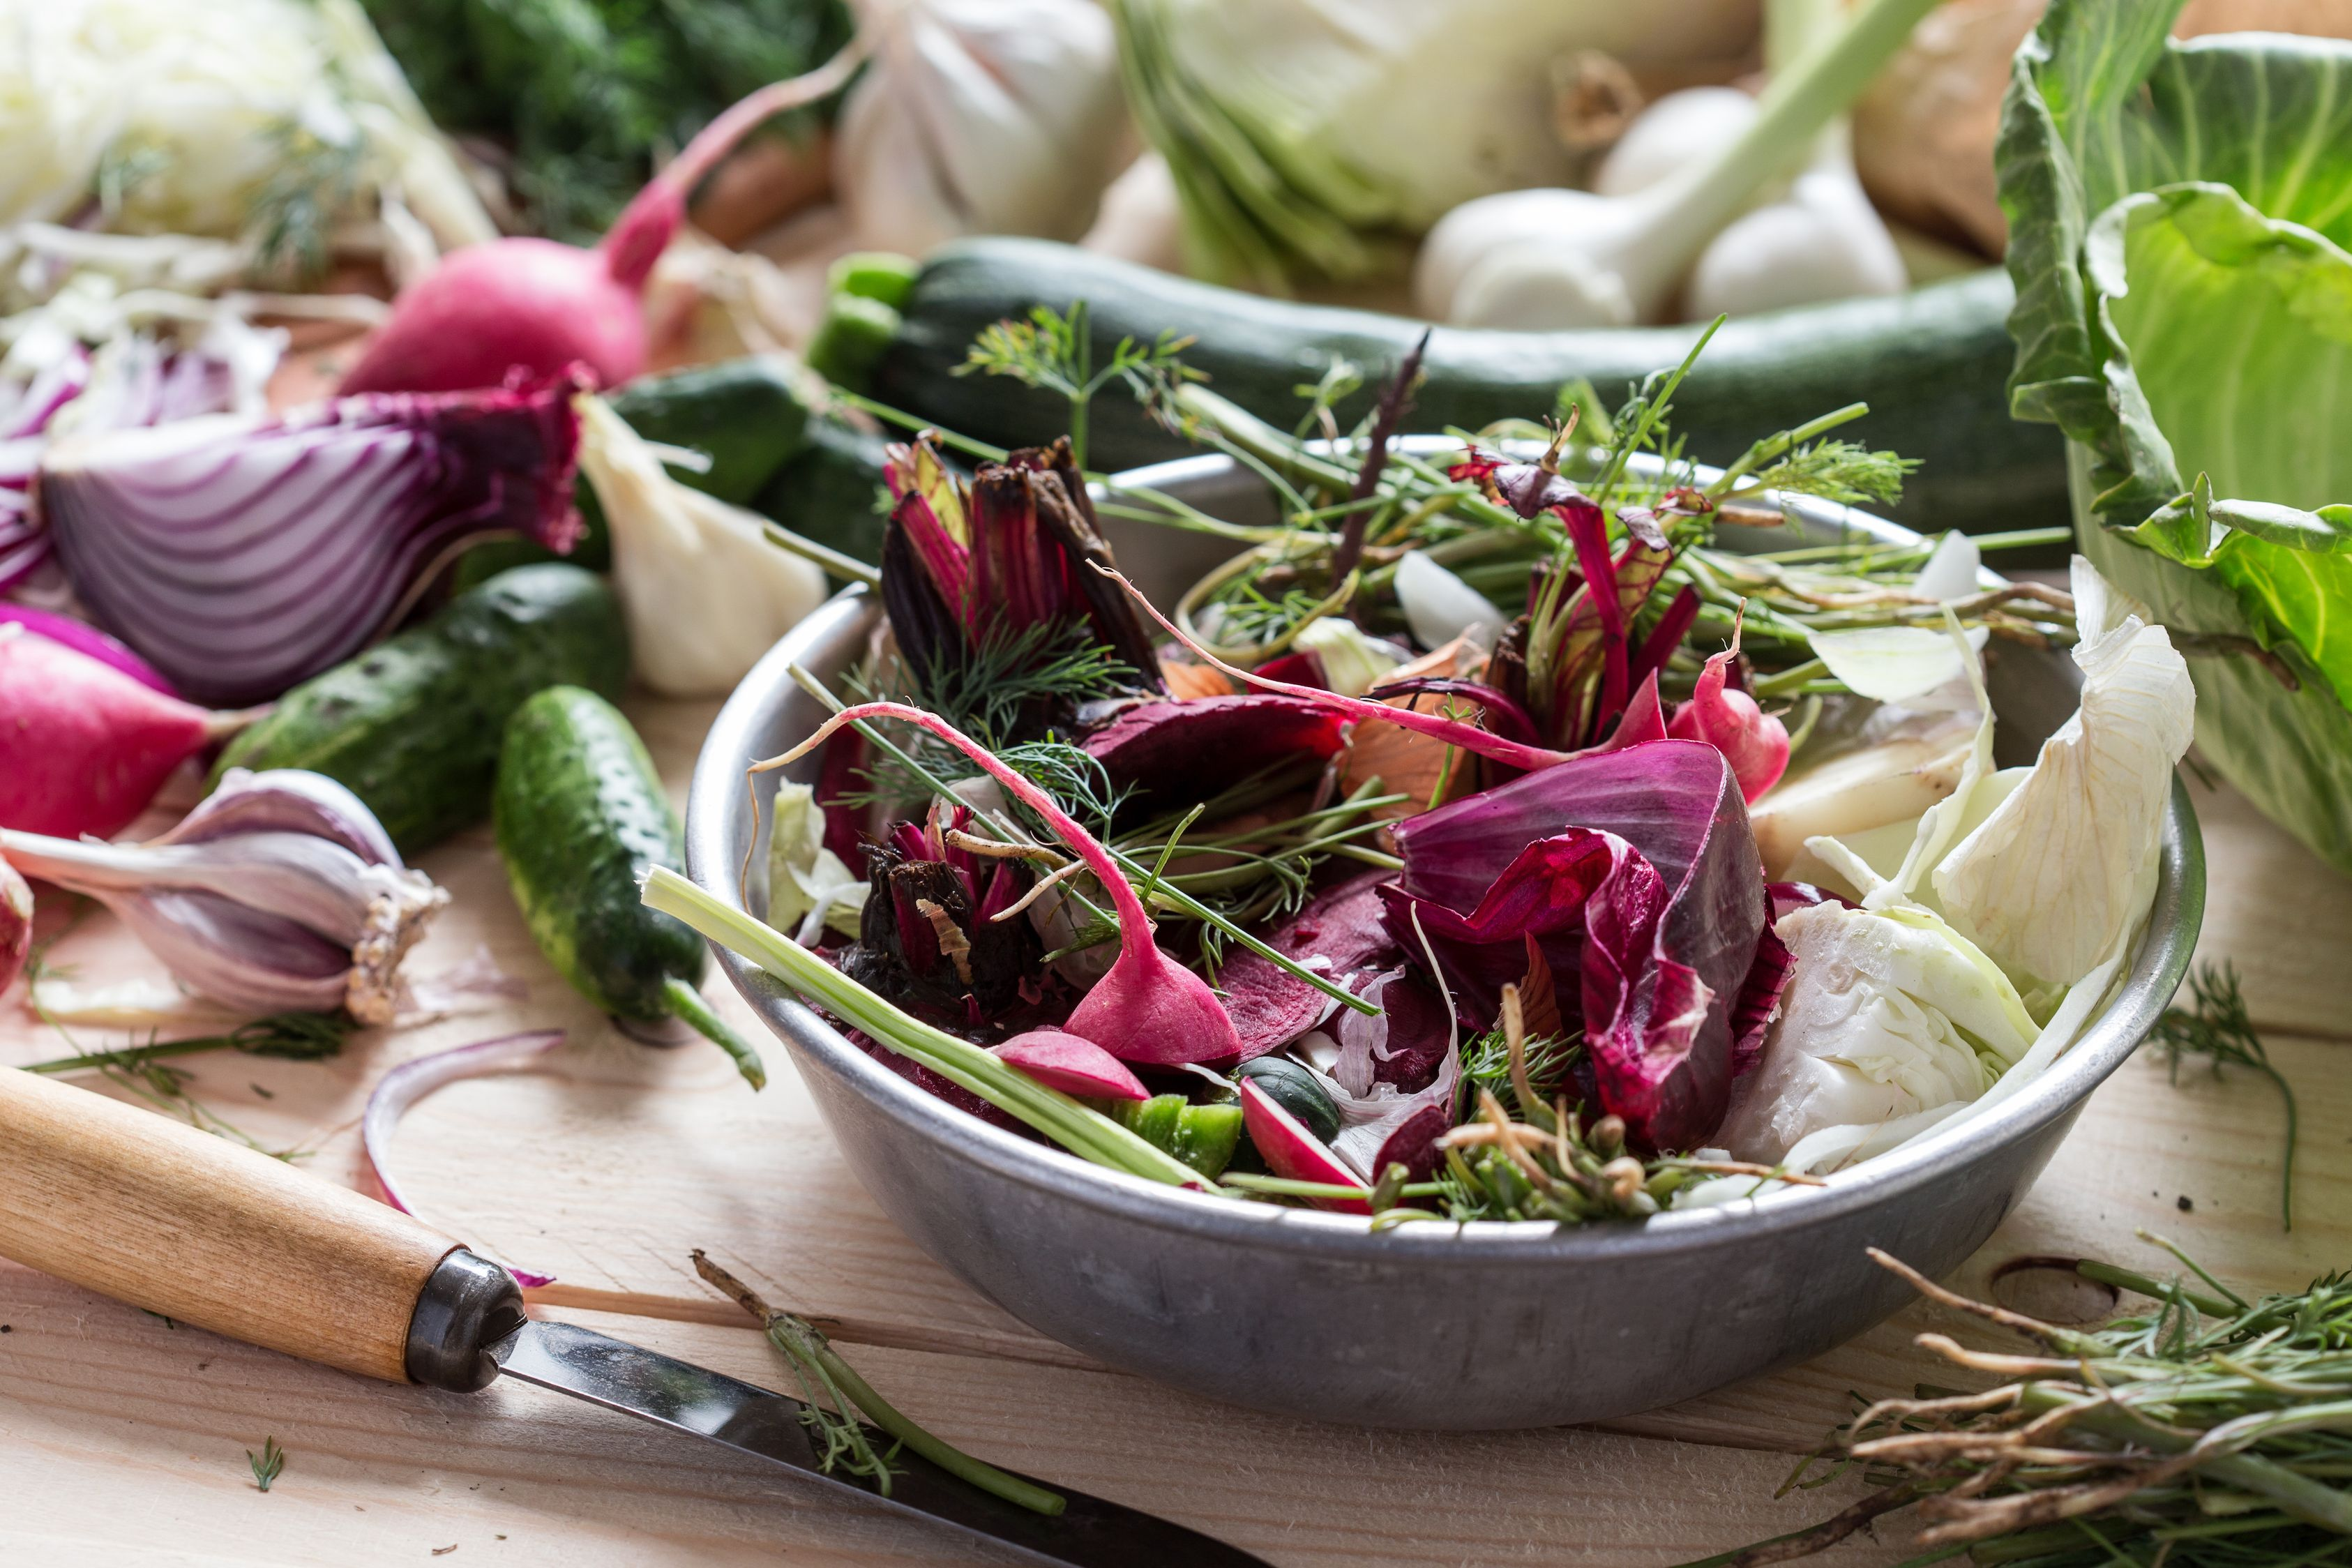 IKEA's new clever cookbook puts kitchen scraps to good use